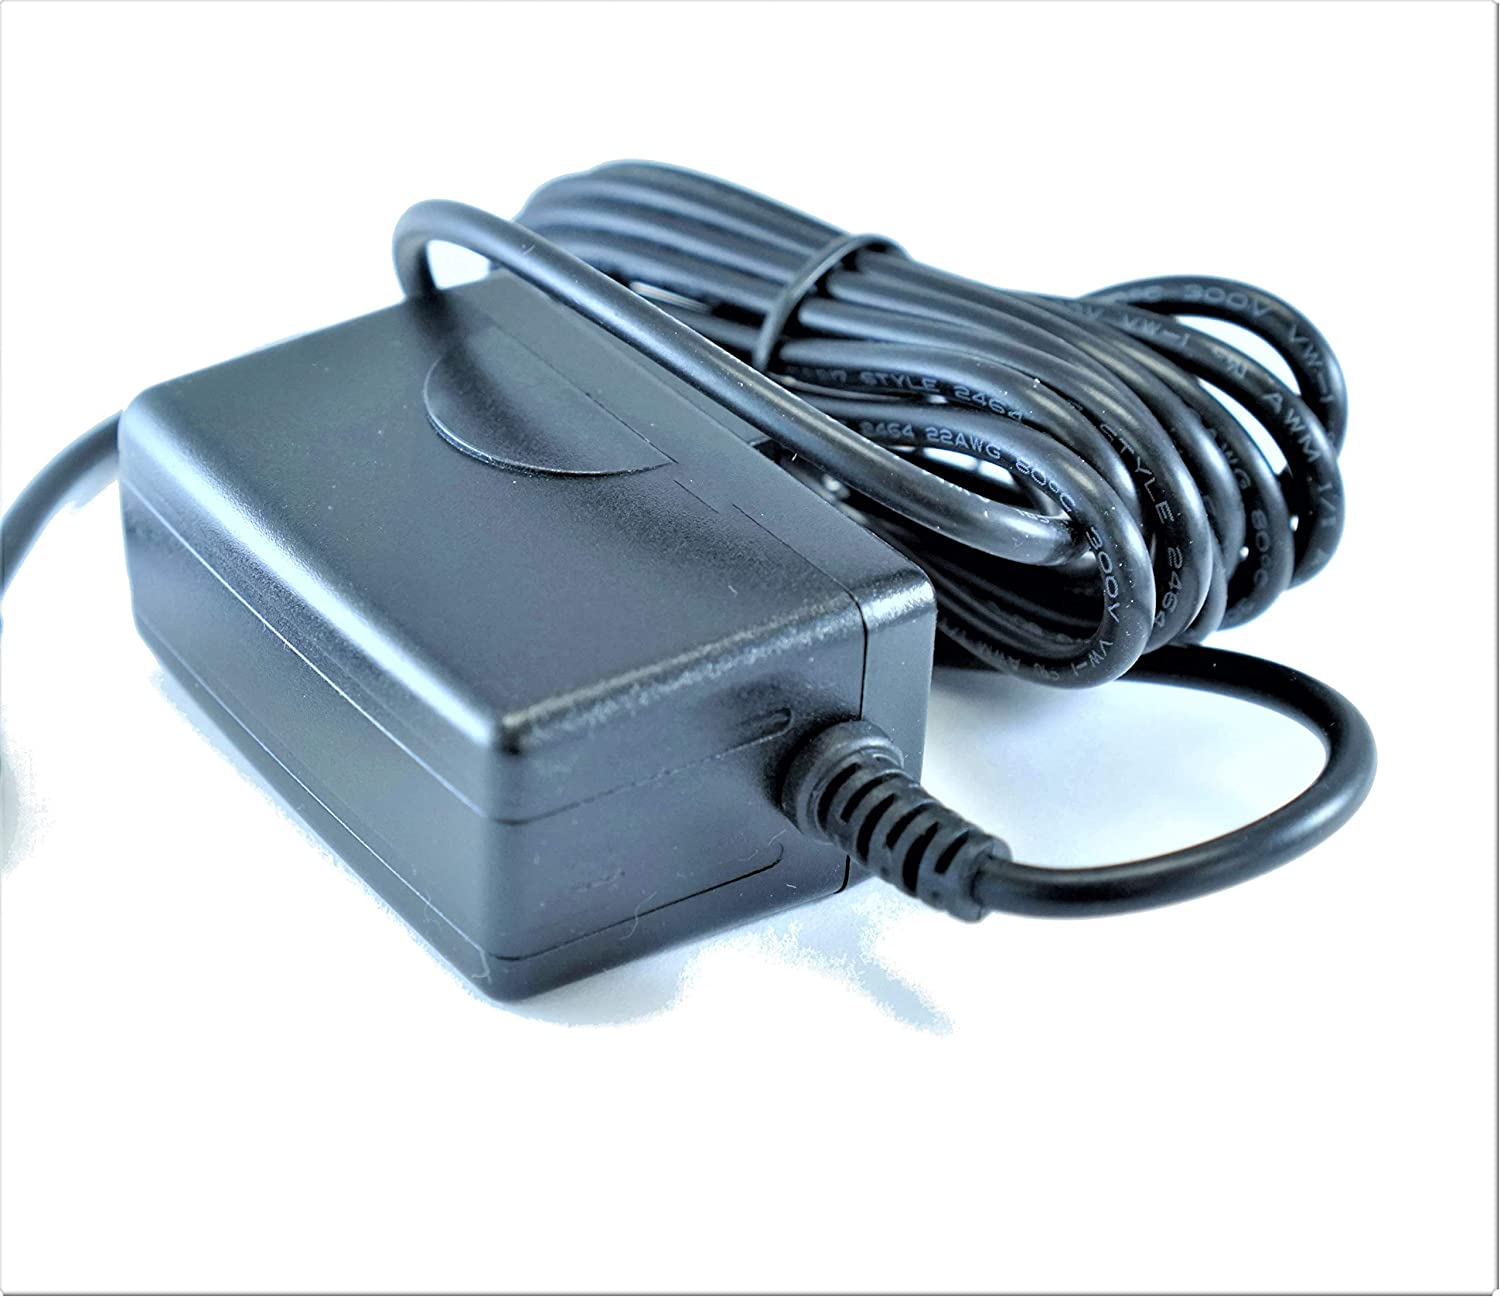 UL Listed 12V 1A 1000mA OMNIHIL 8 Feet Long AC//DC Adapter with 5.5 mm x 2.1 mm Plug Size